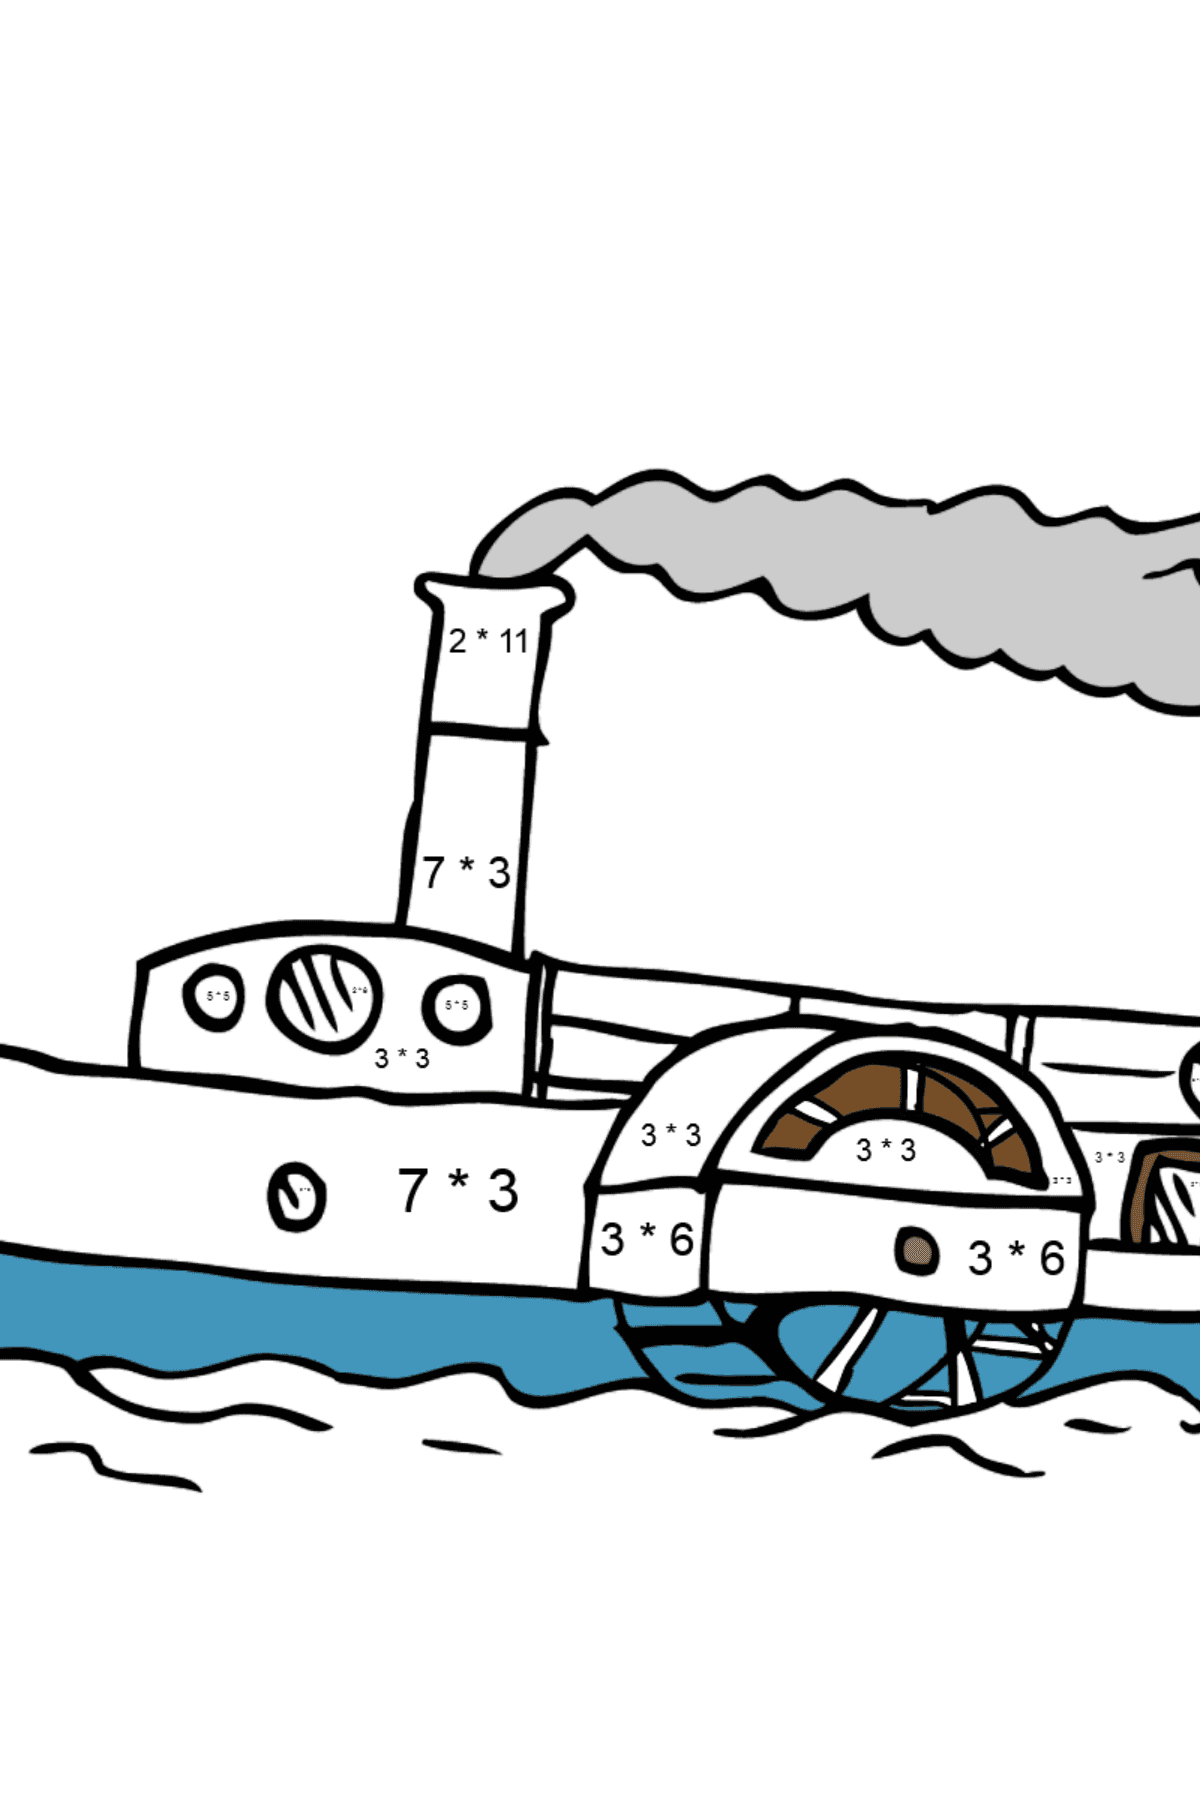 Coloring Page - A Ship with a Paddle Wheel - Math Coloring - Multiplication for Kids